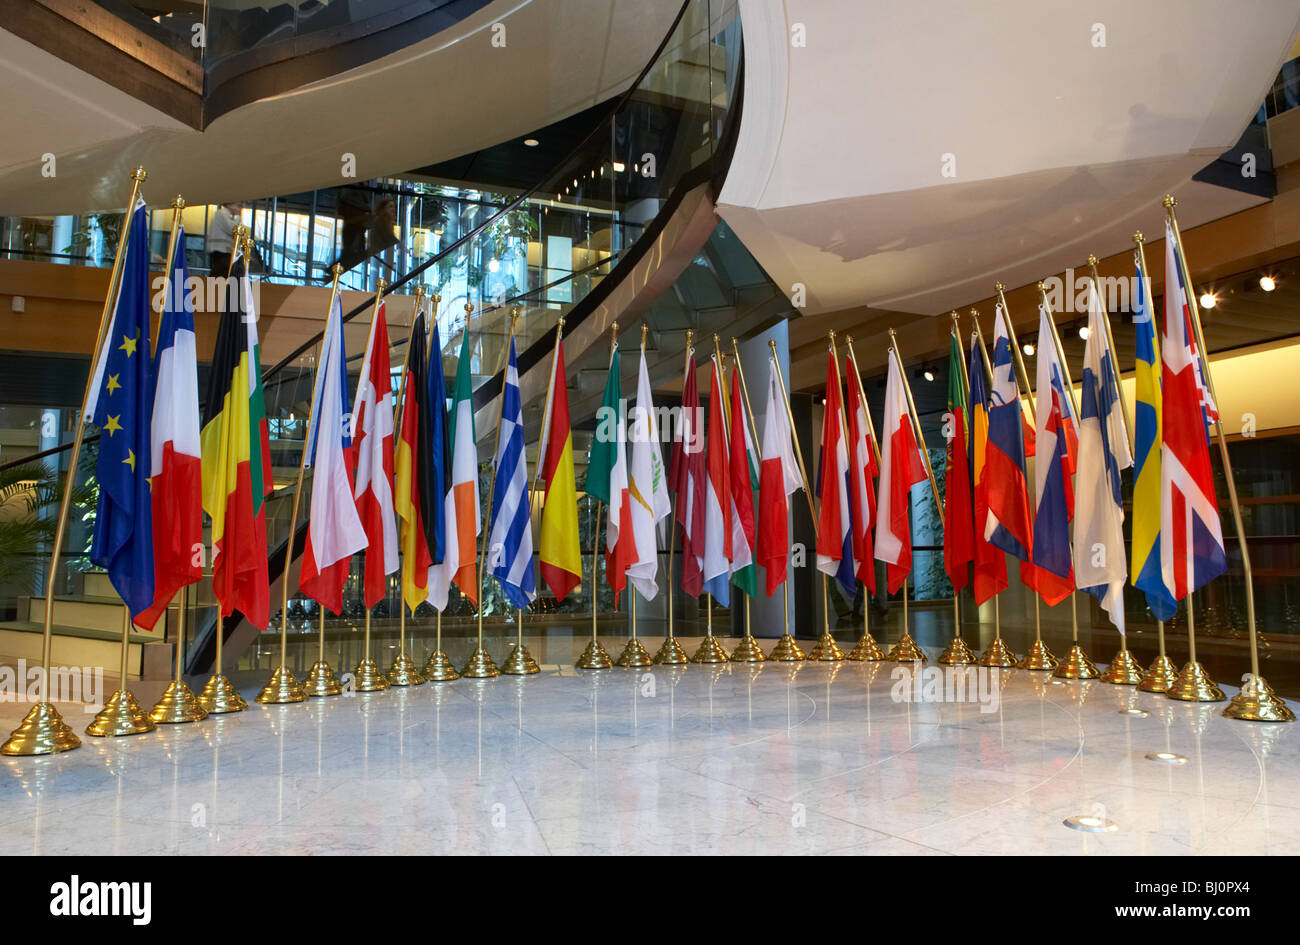 Flags of the EU-nations in the European Parliament building, Strasbourg, France - Stock Image